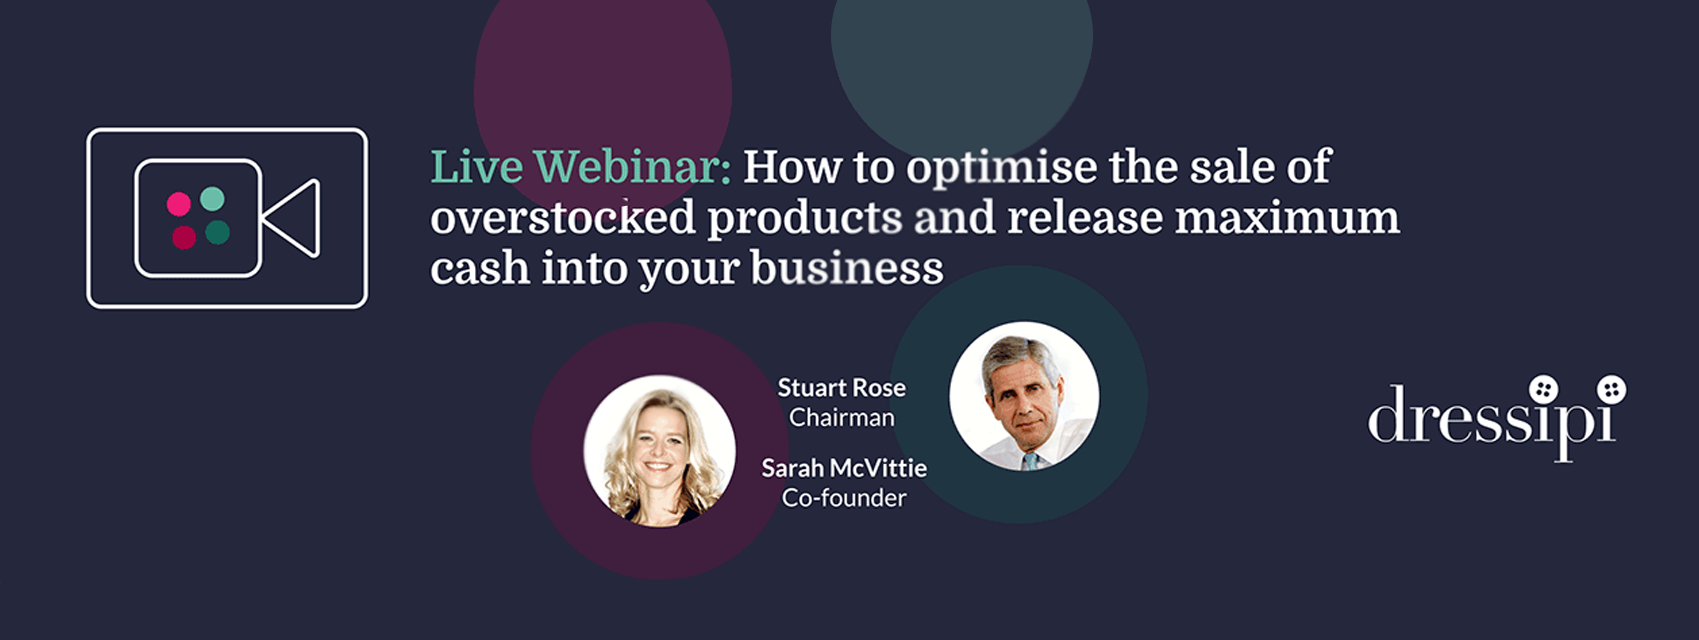 Top 3 Takeaways from our Webinar on Optimising the Sale of Overstocked Products